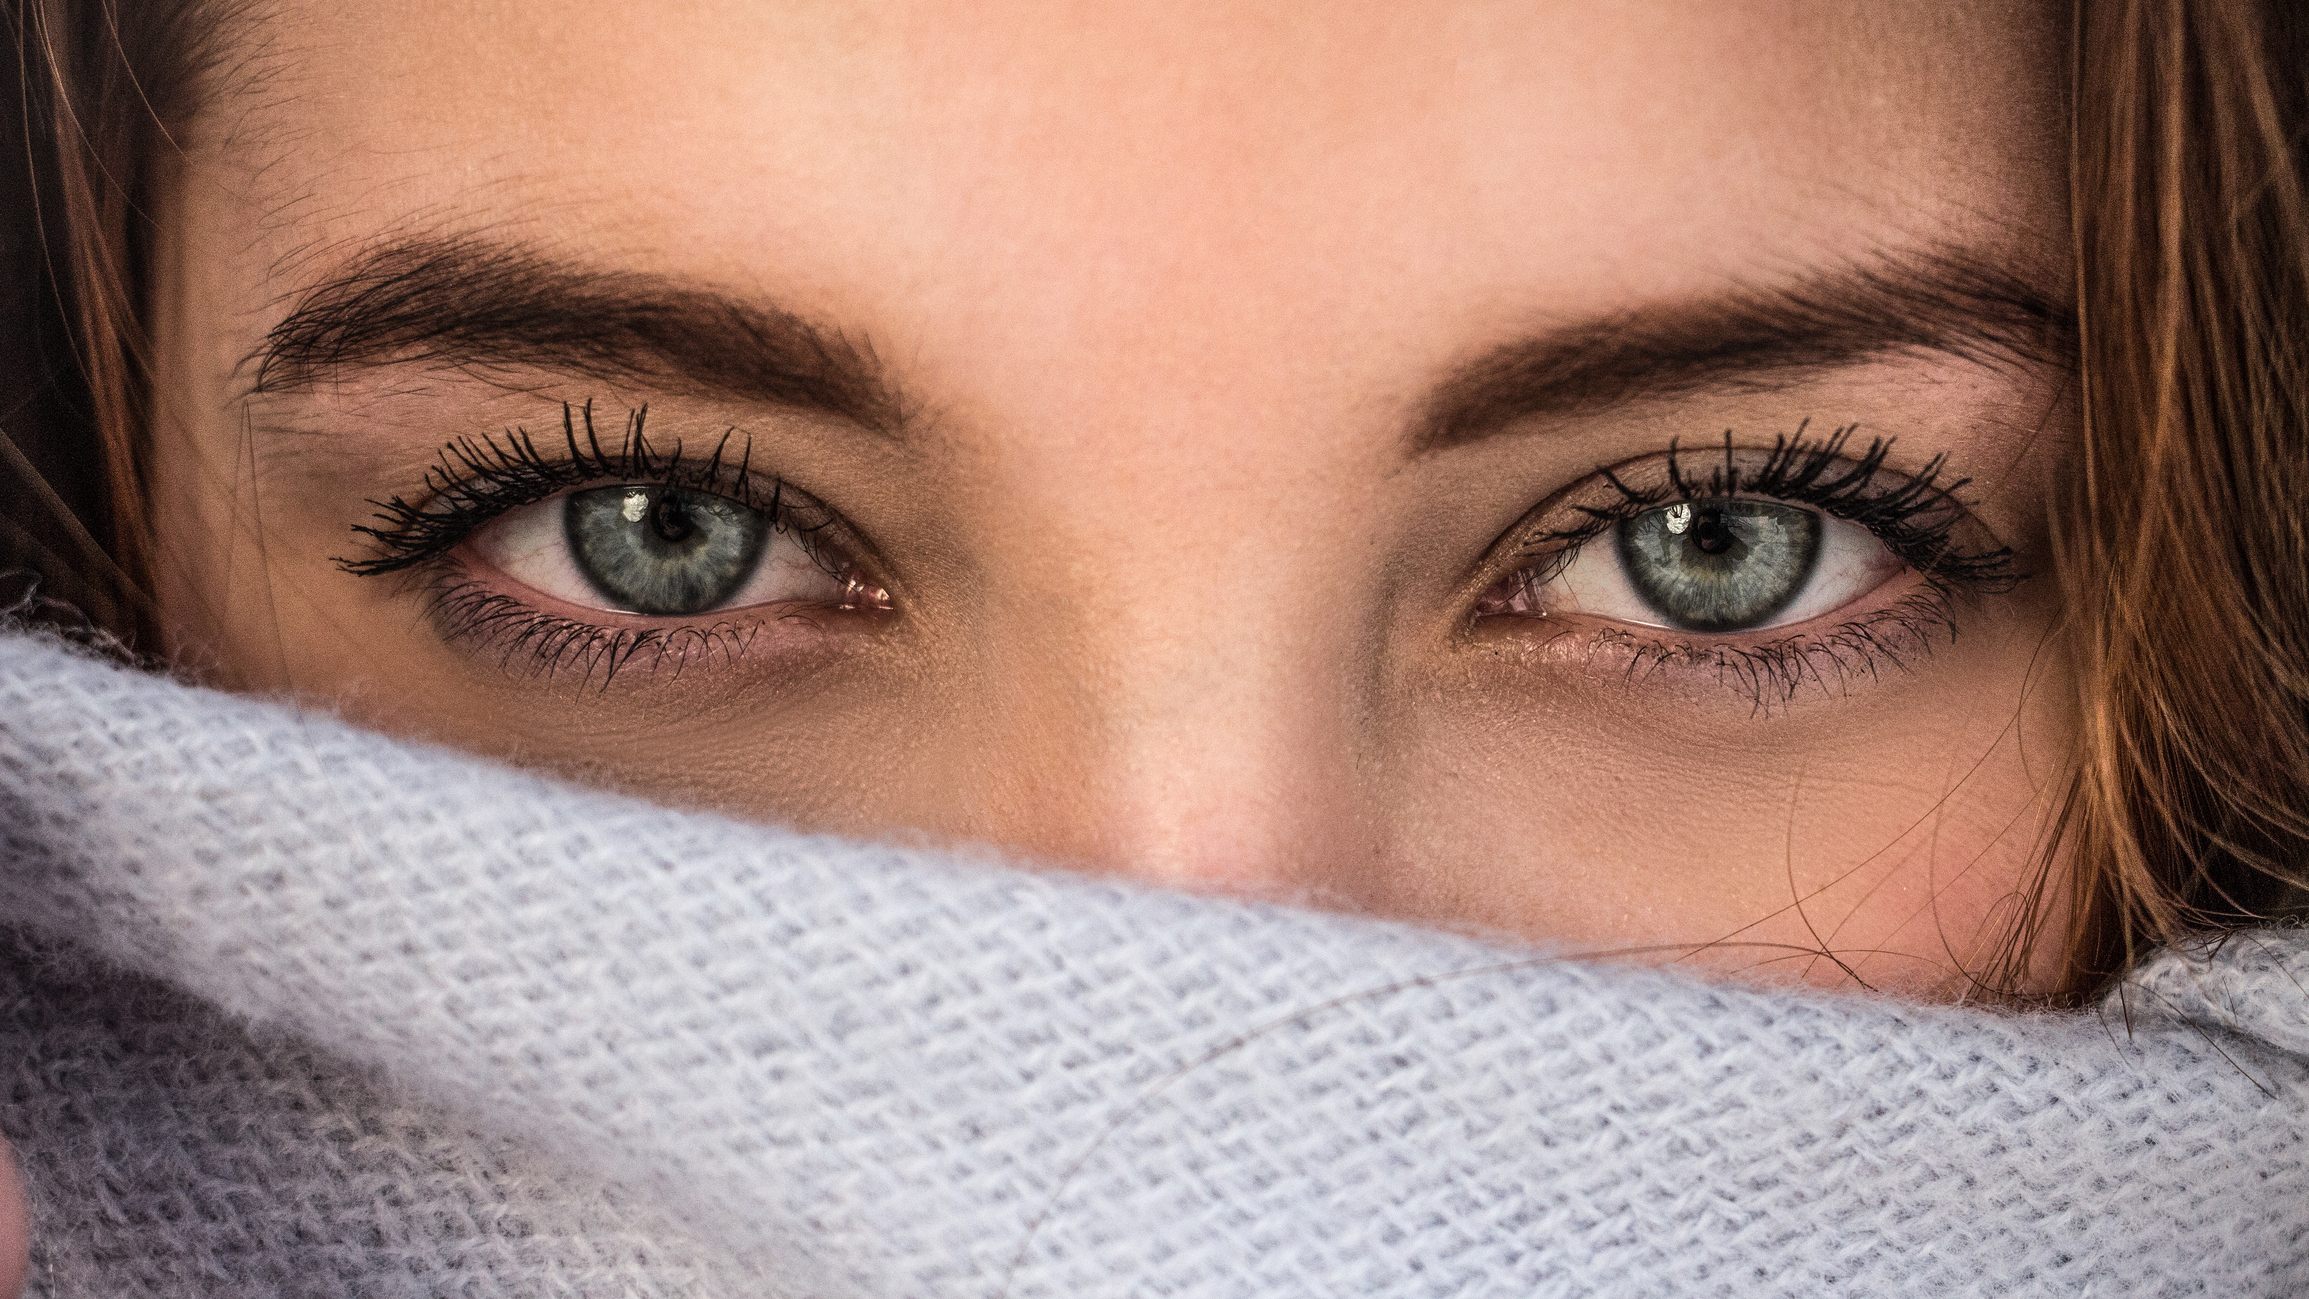 Eyebrow tinting at home – how to avoid it going wrong | Woman&Home